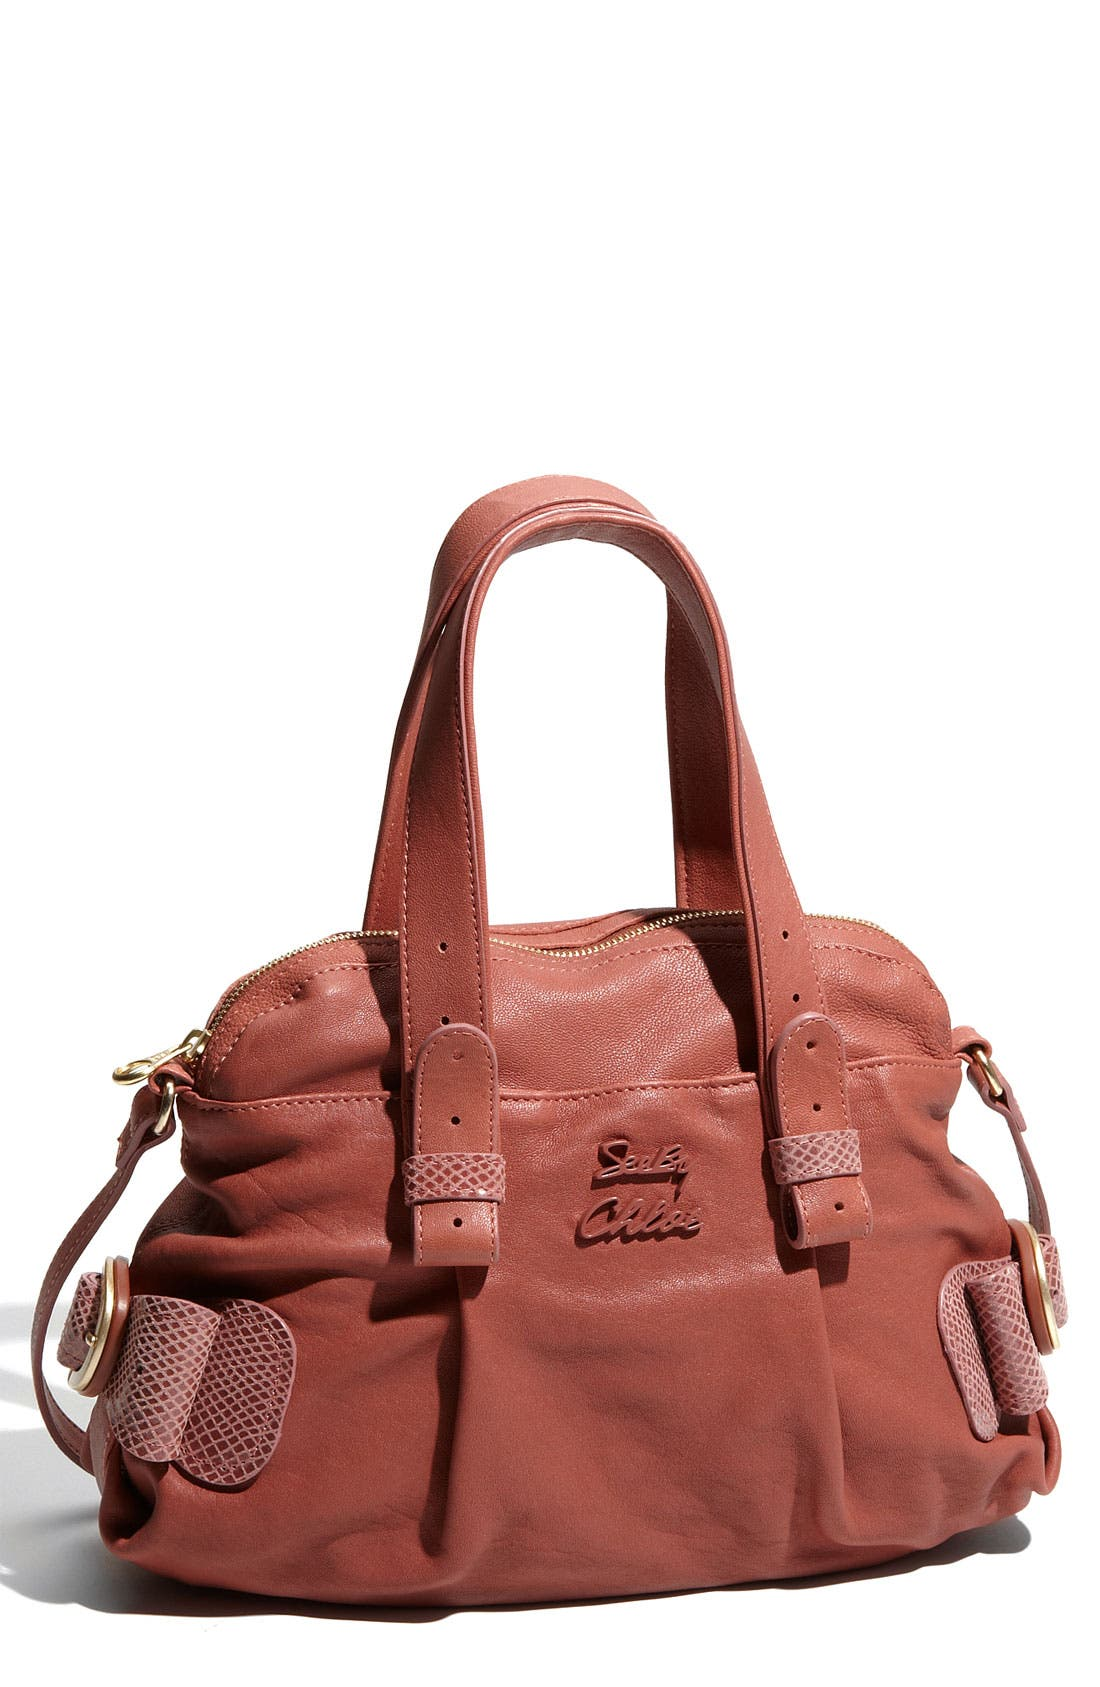 Main Image - See By Chloé 'Daumi' Leather Satchel